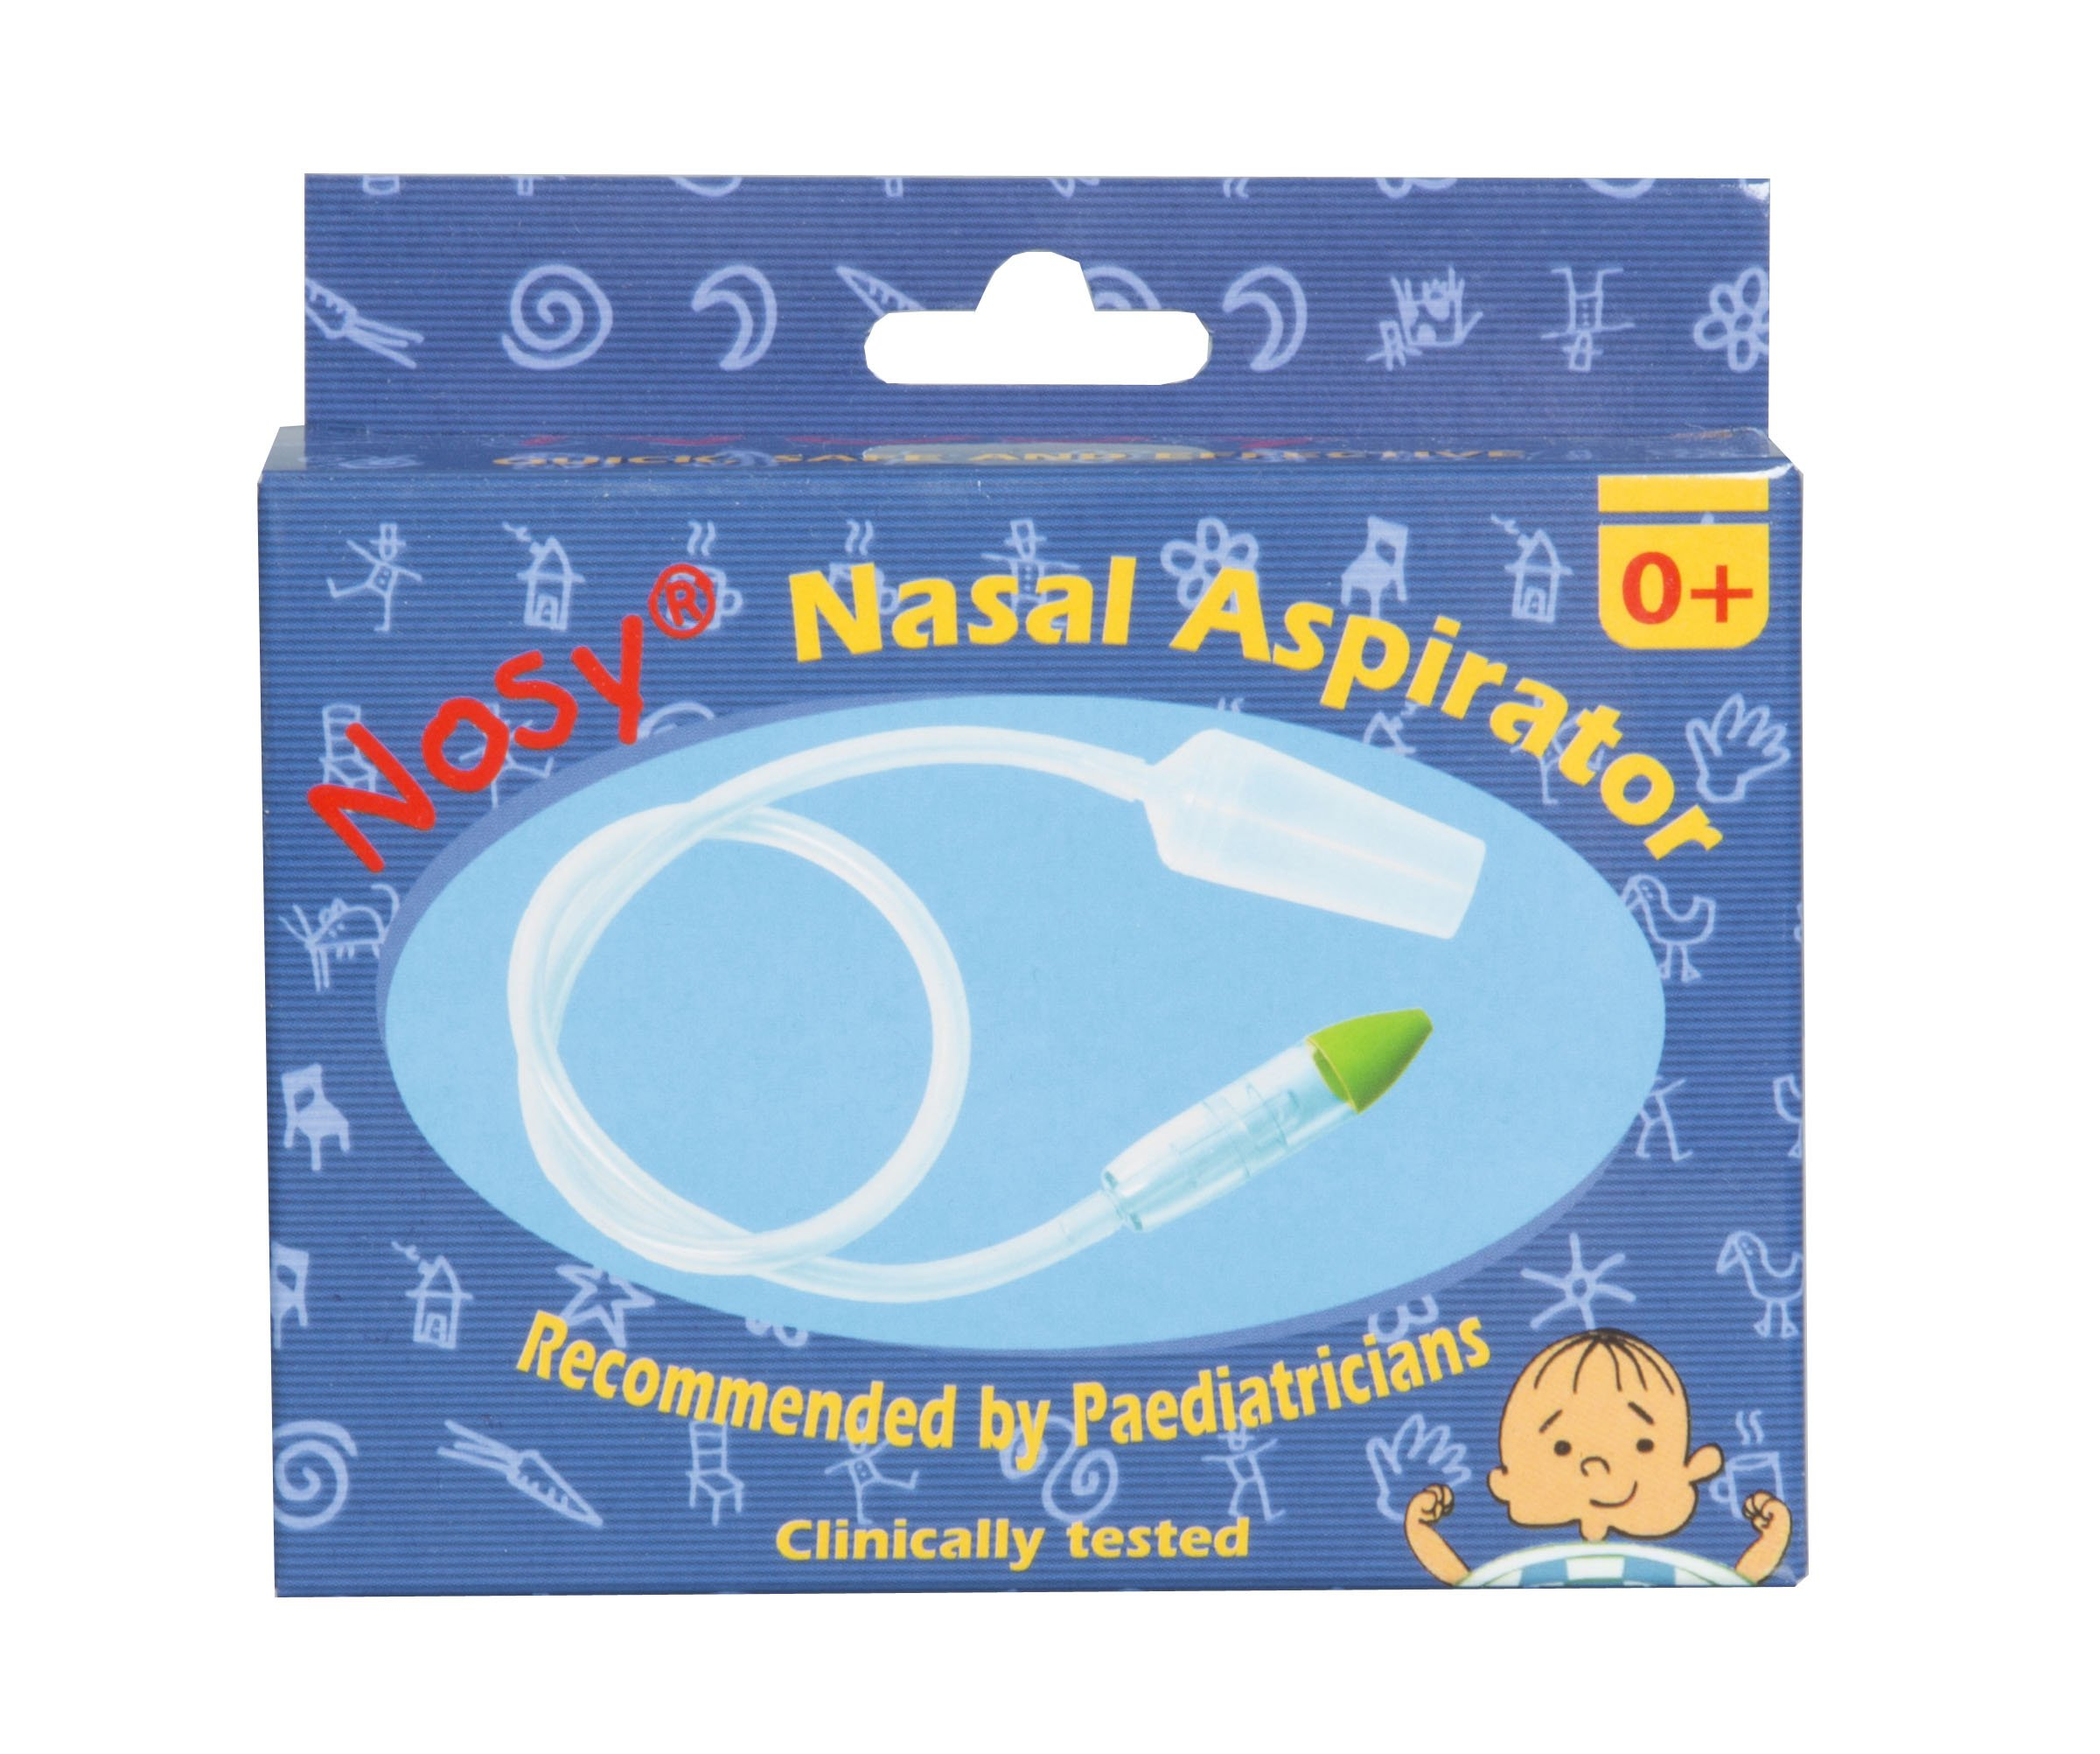 Nosy Nasal Aspirator/snotsucker -The Most Effective Nose Cleaner for Sinus Congestion Cold and flu. Safe, Gentle Fast Nose Suction for Newborns Infants by Benny Nasal Aspirator Vacuum